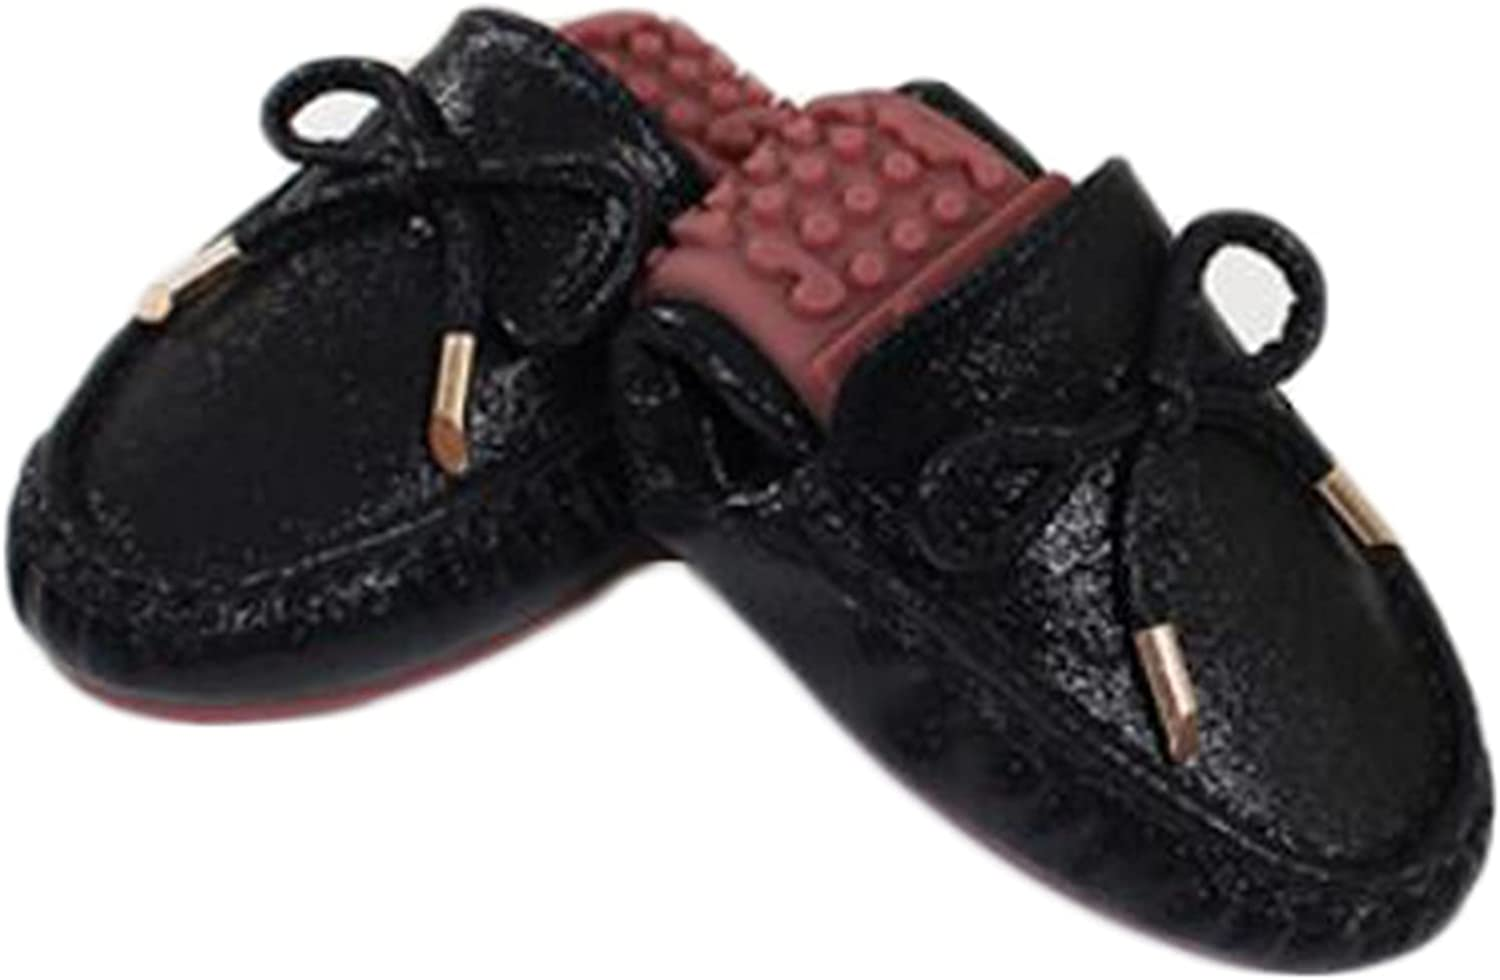 unisex Women Walking Memphis Mall Shoes Round Toe Bowtie Outdoor Casual Flats